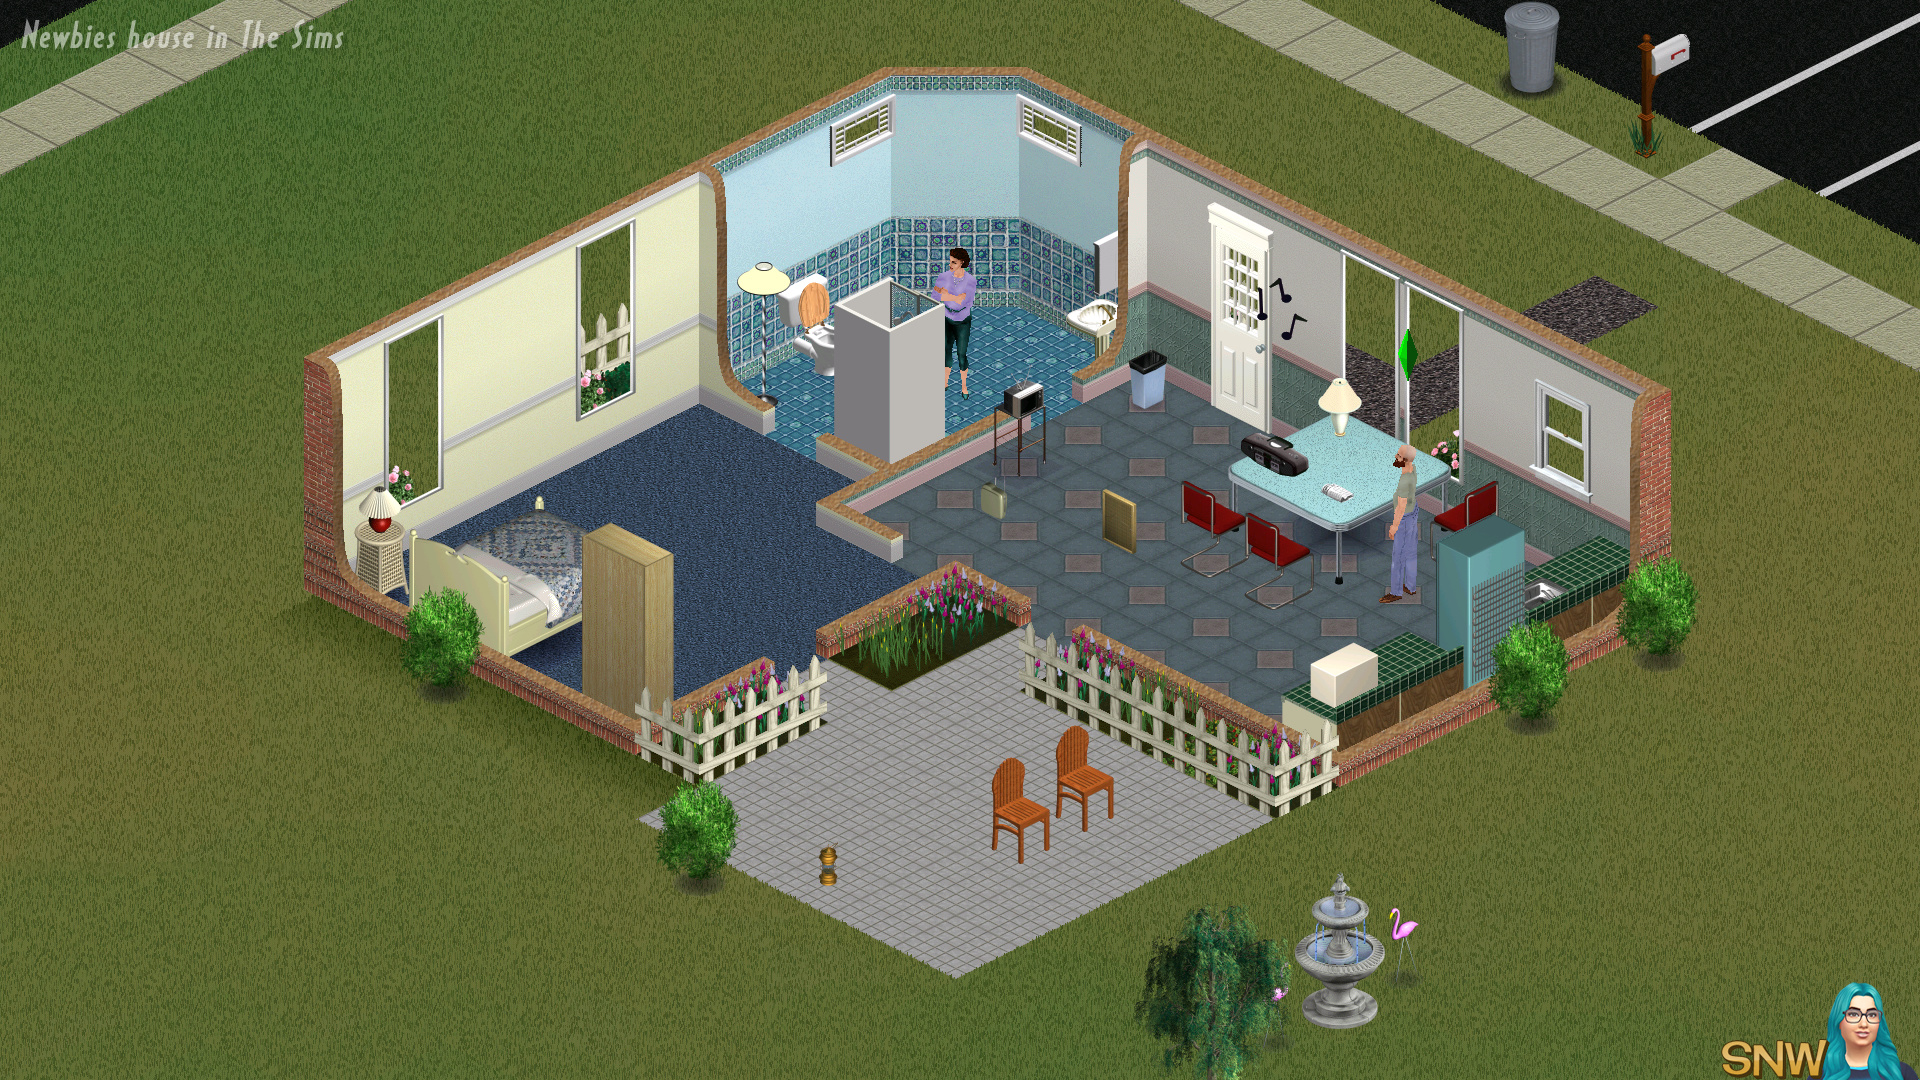 How To Paint Walls In Sims